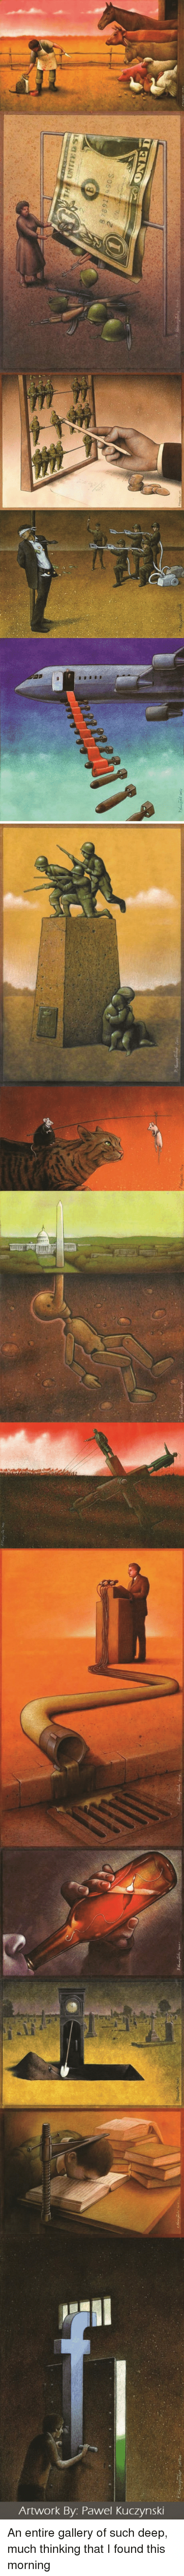 Im 14 & This Is Deep, Deep, and  Gallery: Artwork By: Pawel Kuczynski An entire gallery of such deep, much thinking that I found this morning